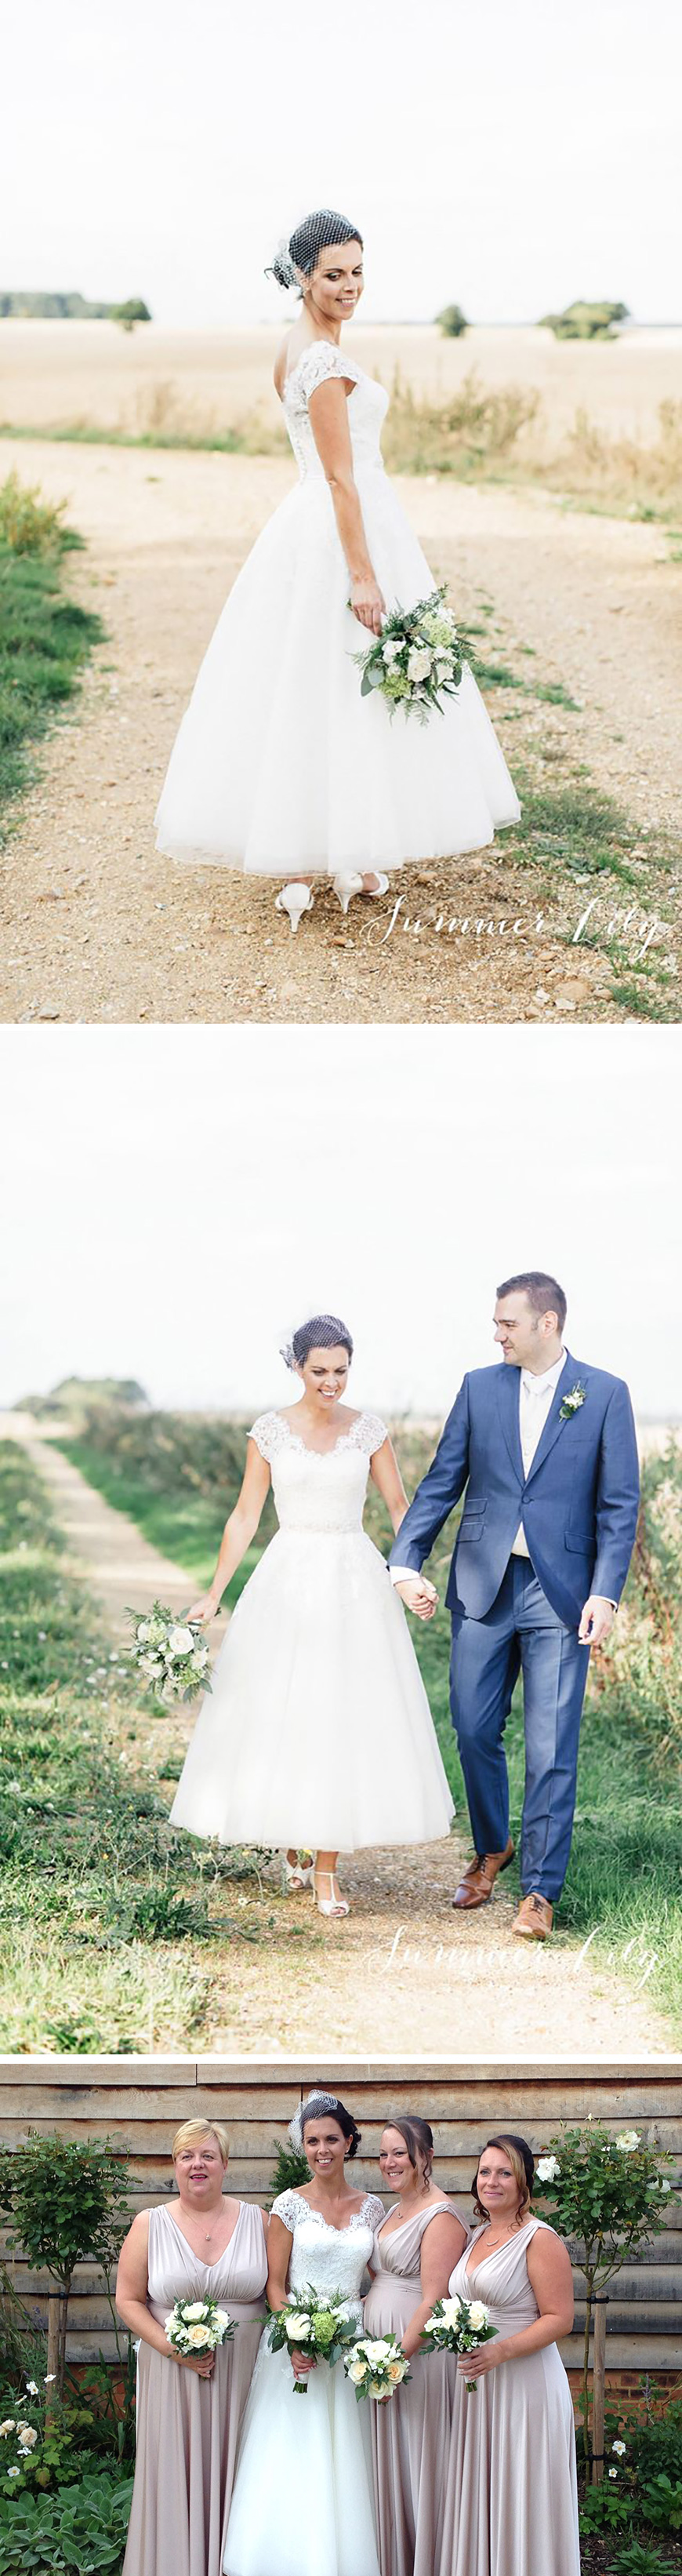 Real Wedding - Jessica and Chris' Fun-Loving Wedding | CHWV